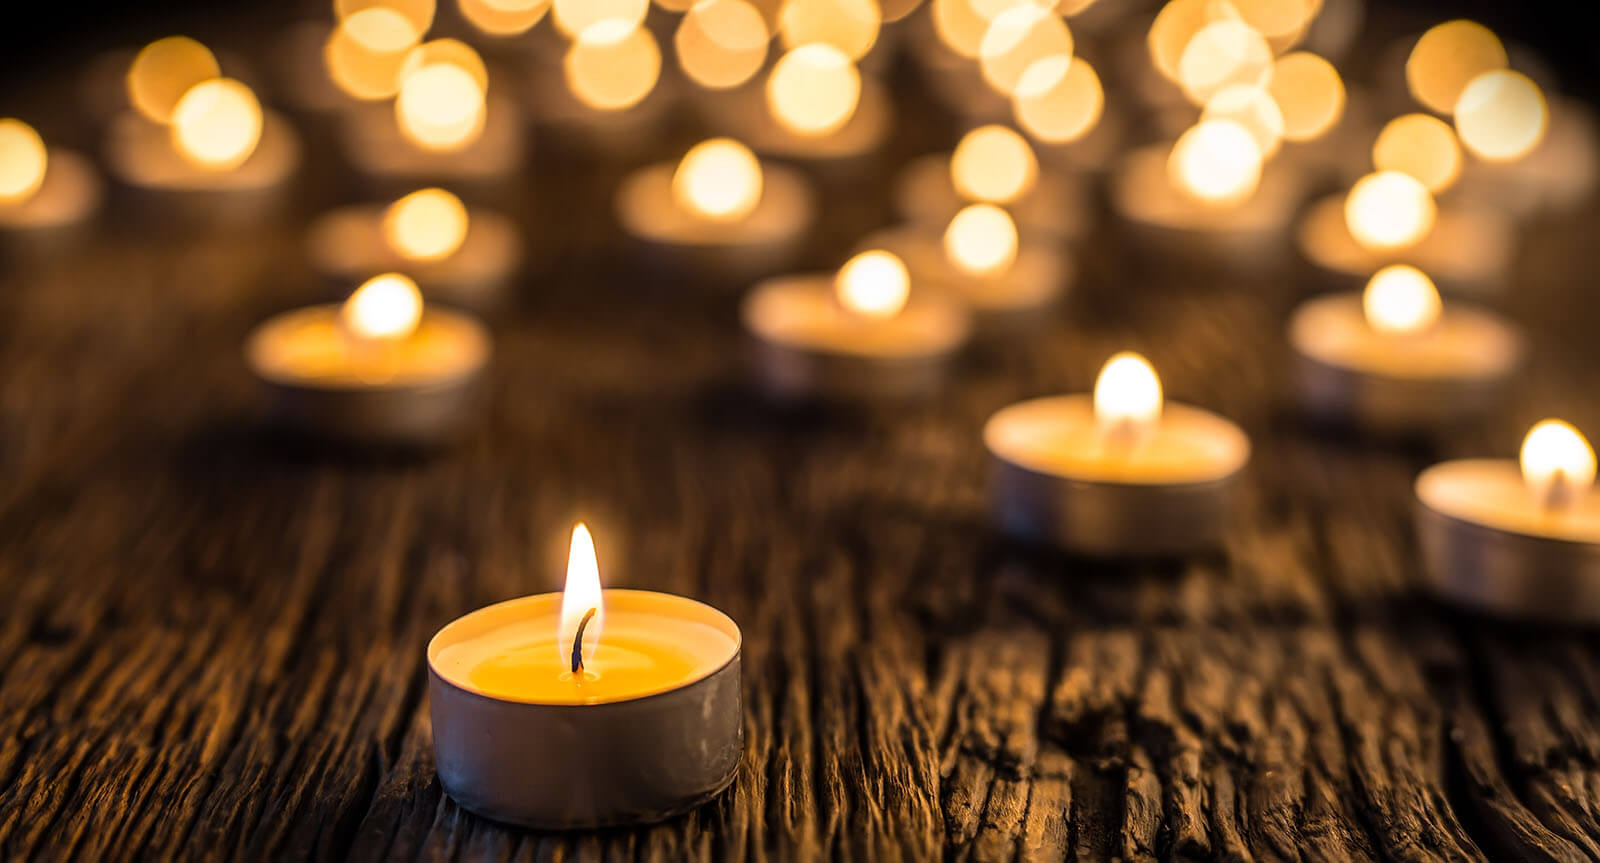 Candles on a wooden plank image